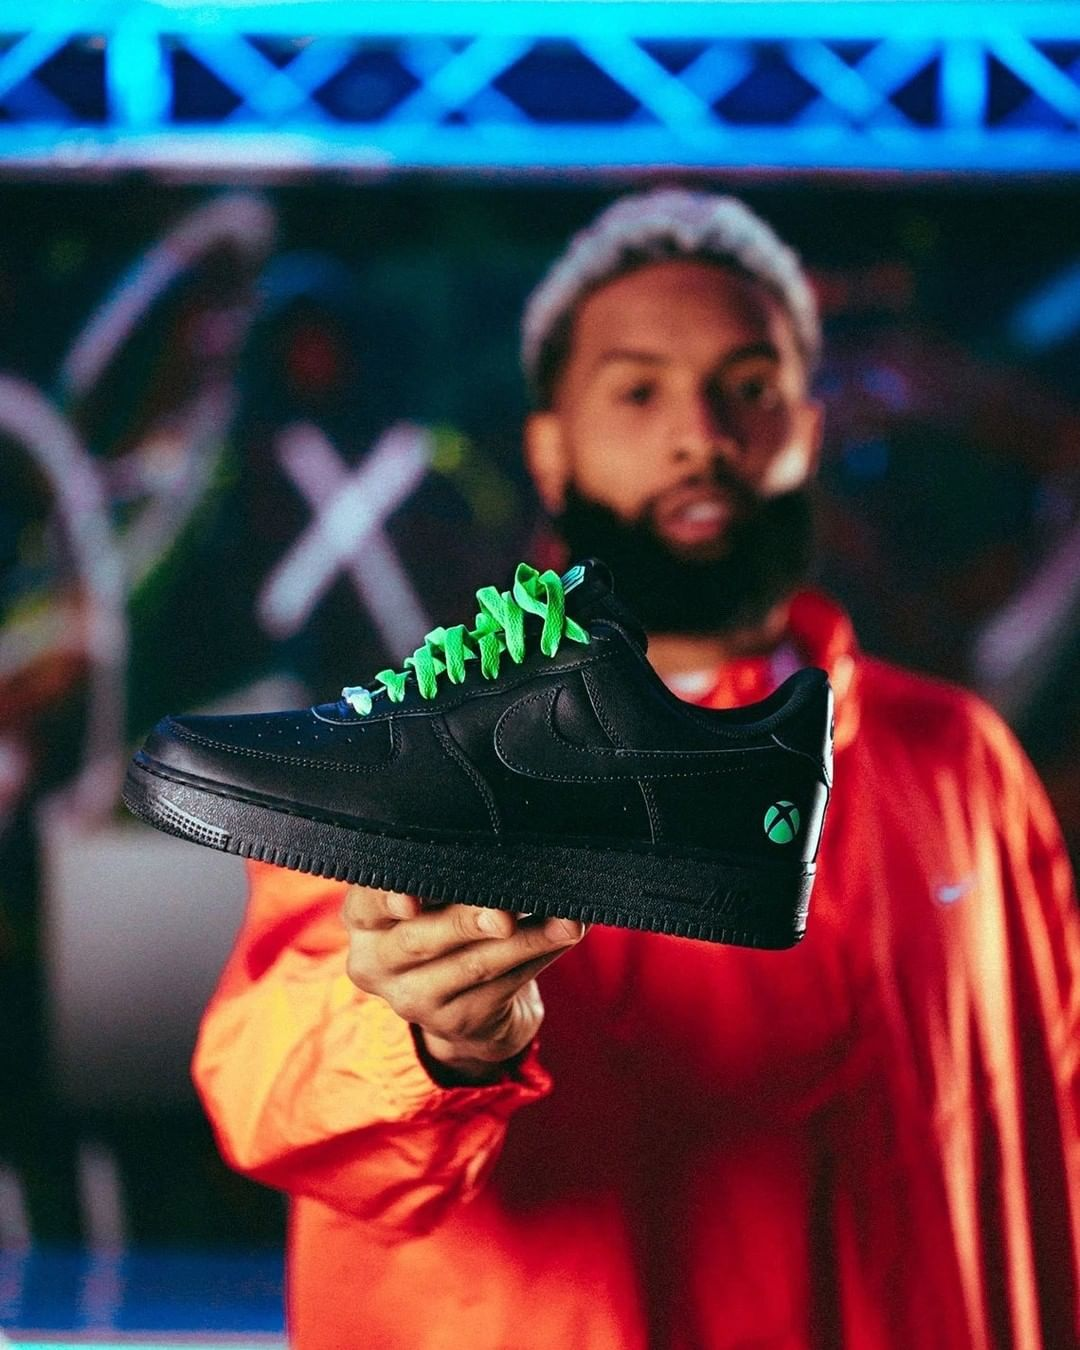 Odell Beckham Jr. holds a solid black sneaker with green laces